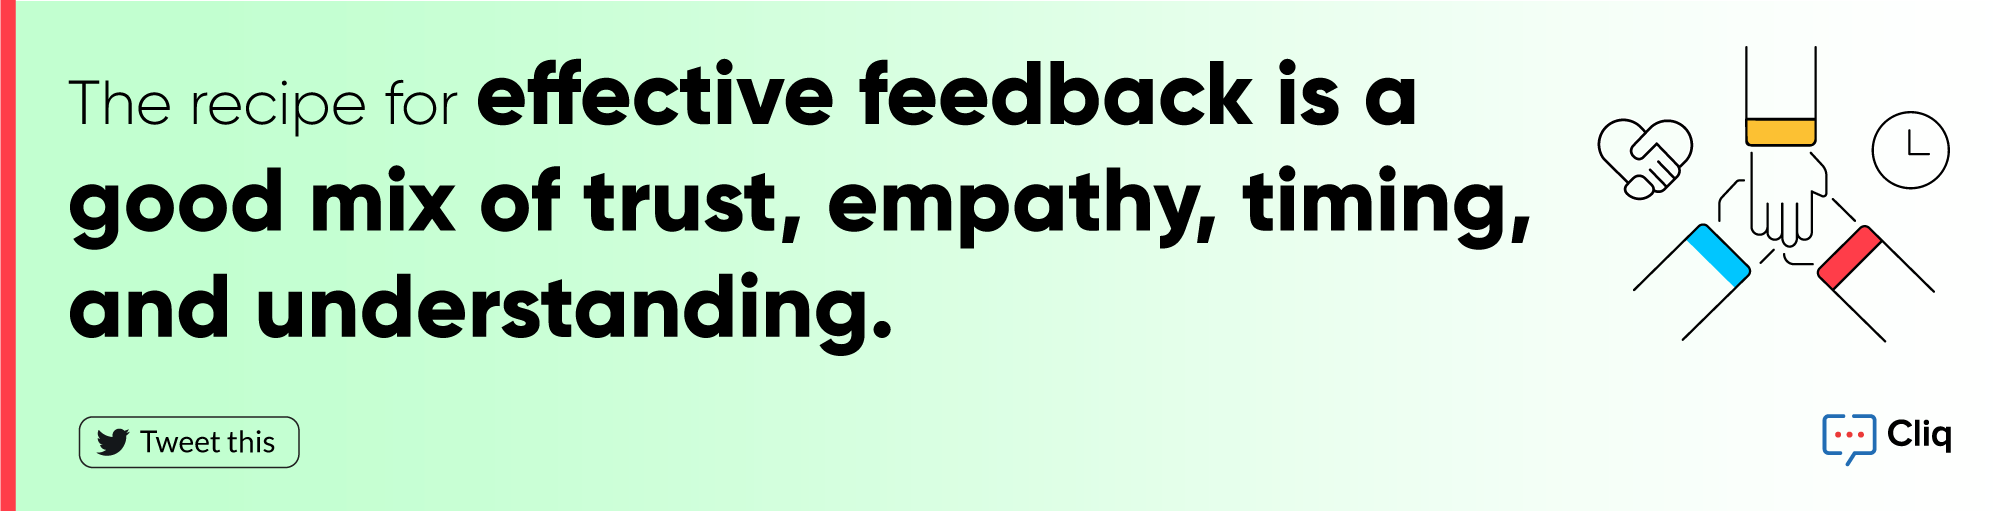 The recipe for effective feedback is a good mix of trust, empathy, timing, and understanding. - Zoho Cliq